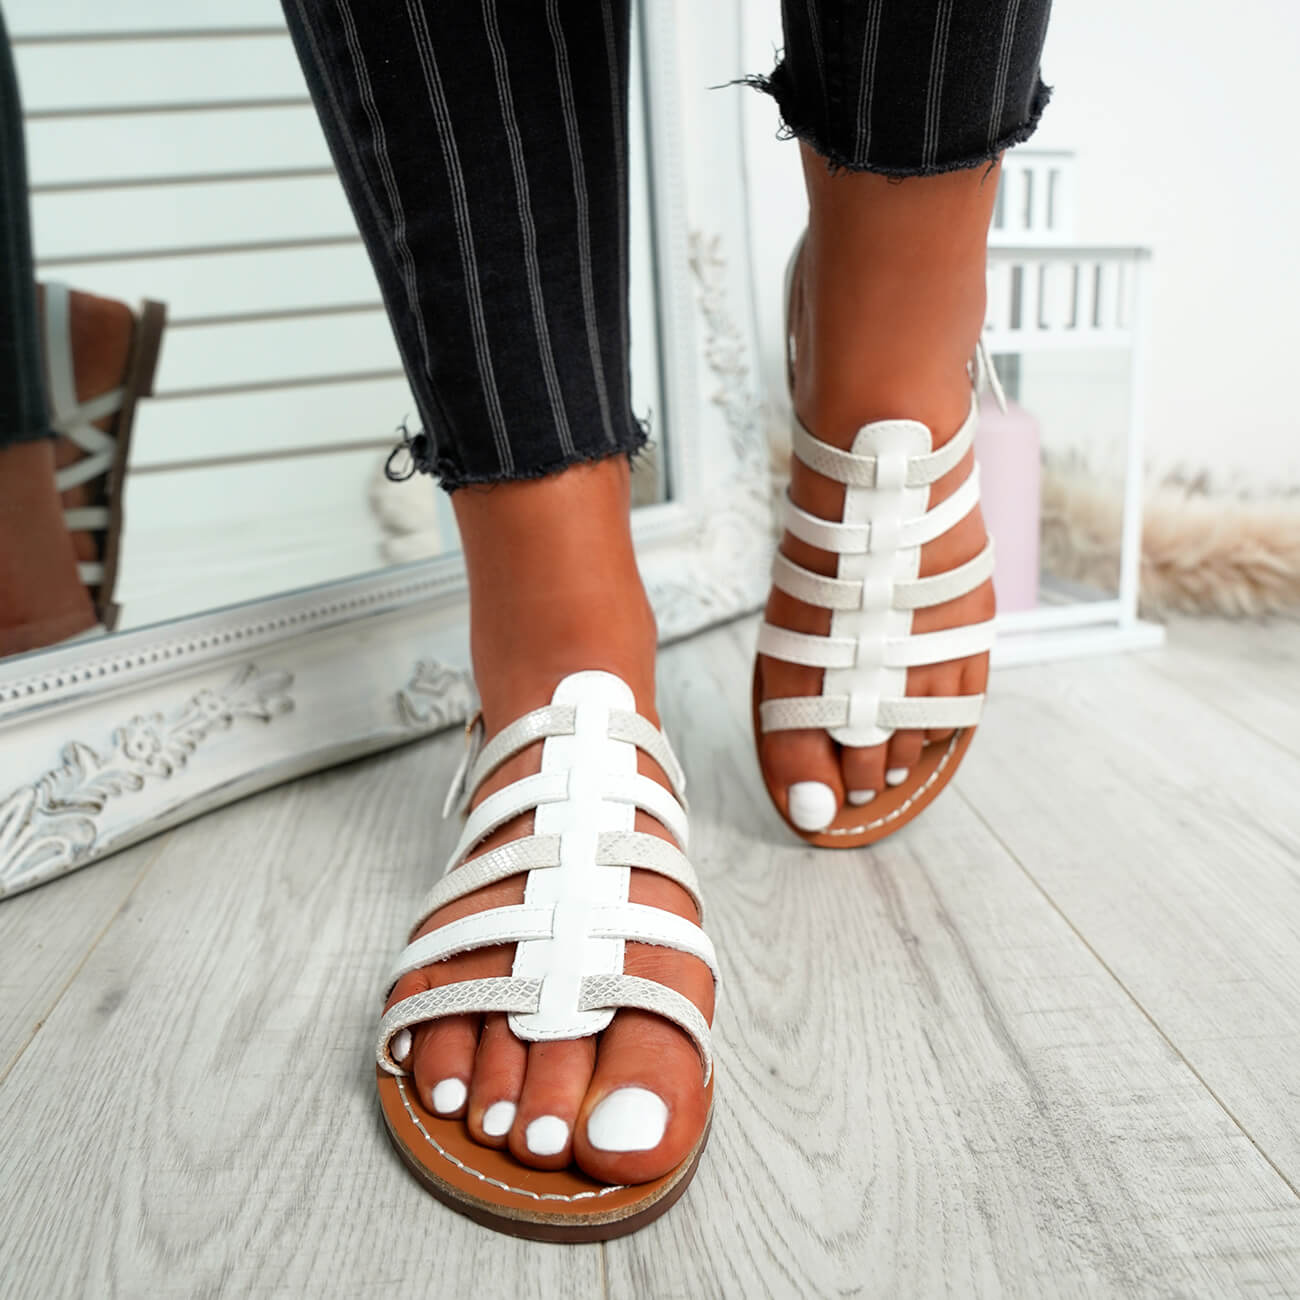 WOMENS-LADIES-BUCKLE-STRAP-FLAT-SUMMER-SANDALS-CASUAL-HOLIDAY-COMFY-SHOES-SIZE thumbnail 32